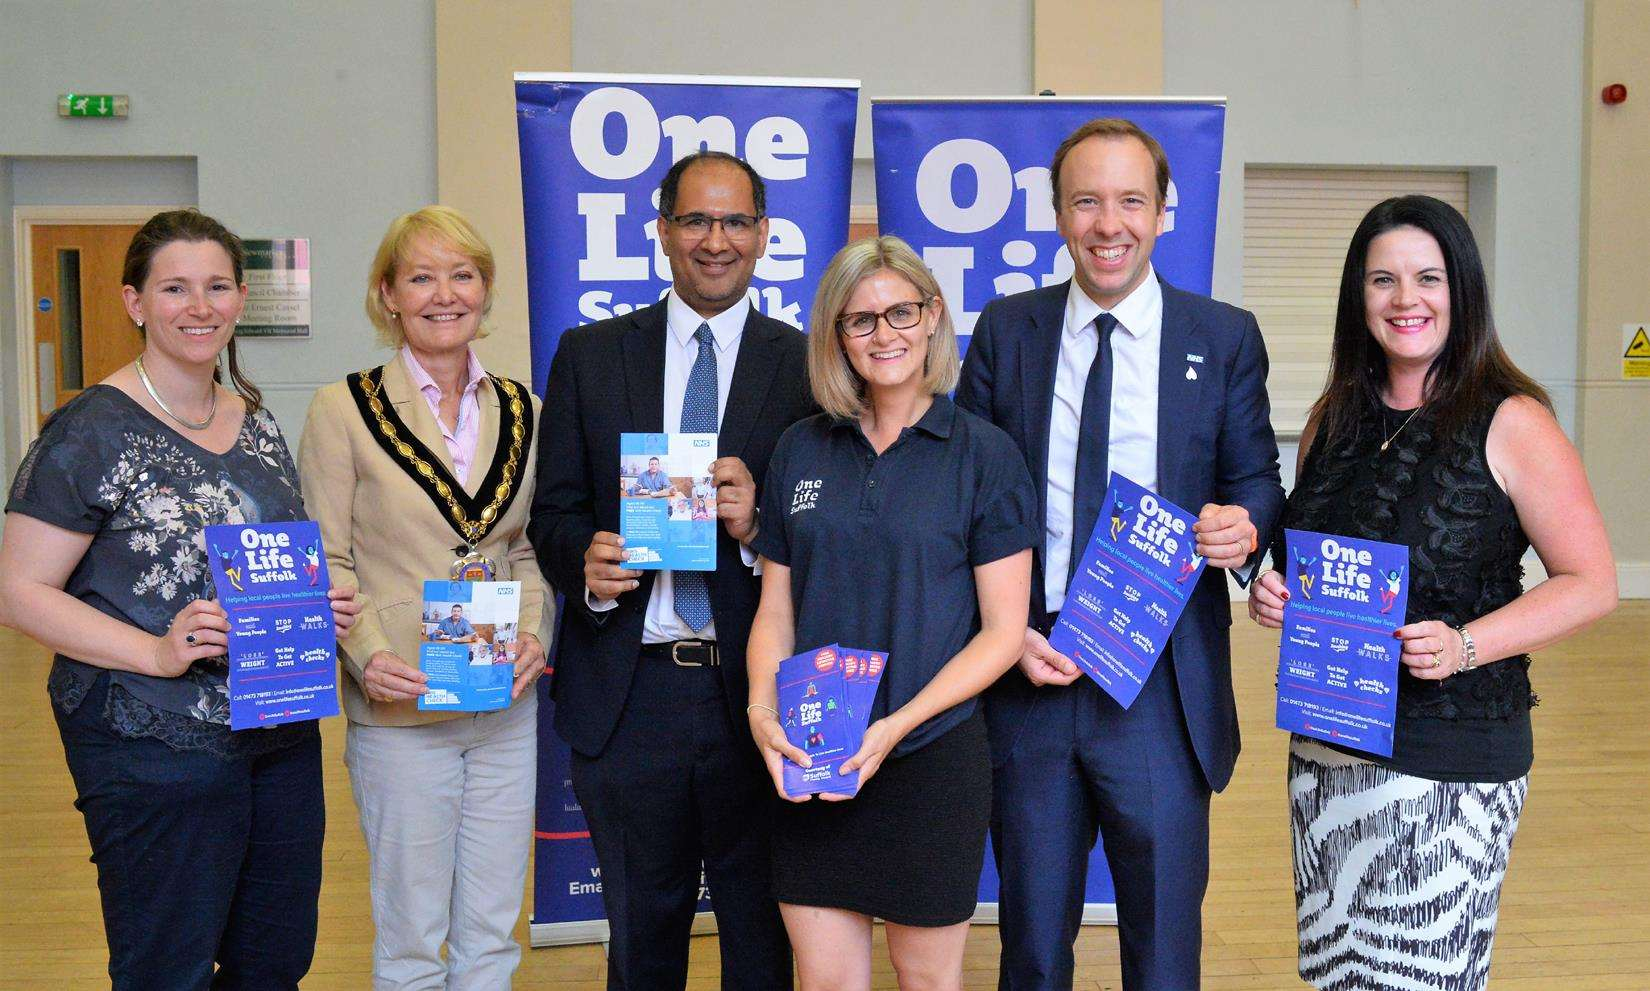 Back in Newmarket, Matt Hancock is pictured with, from left, Newmarket Town Manager Roberta Bennett, mayor Cllr Rachel Hood, Suffolk's director of public health Abdul Razaq, Laura Beale of OneLife Suffolk, and Suffolk County Council's cabinet member for adult care Cllr Beccy Hopfensperger